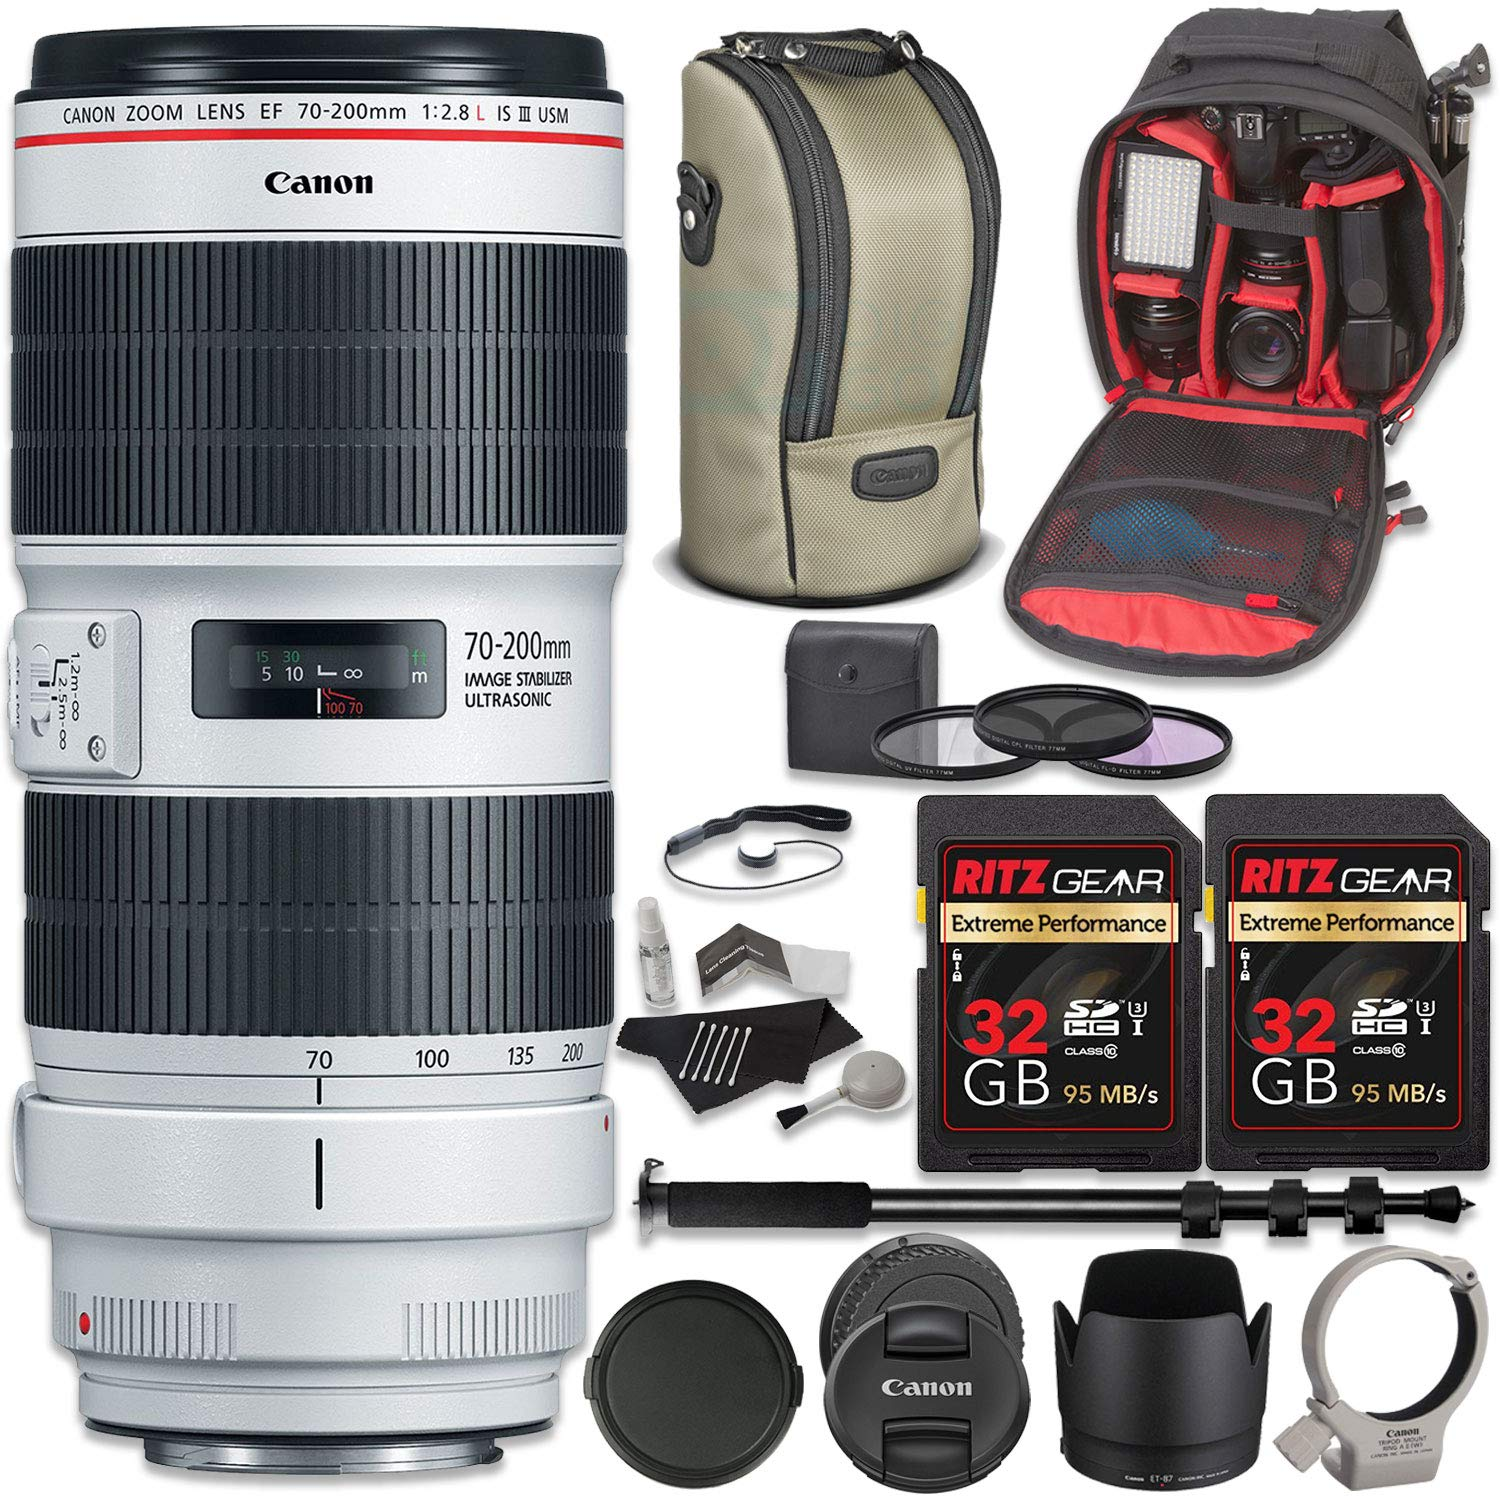 Amazon.com : Canon EF 70-200mm f/2.8L is III USM Lens Bundle with Two Ritz Gear 32GB U3 Extreme Pro SD Cards, Camera Backpack, Monopod, Filter Kit + More ...